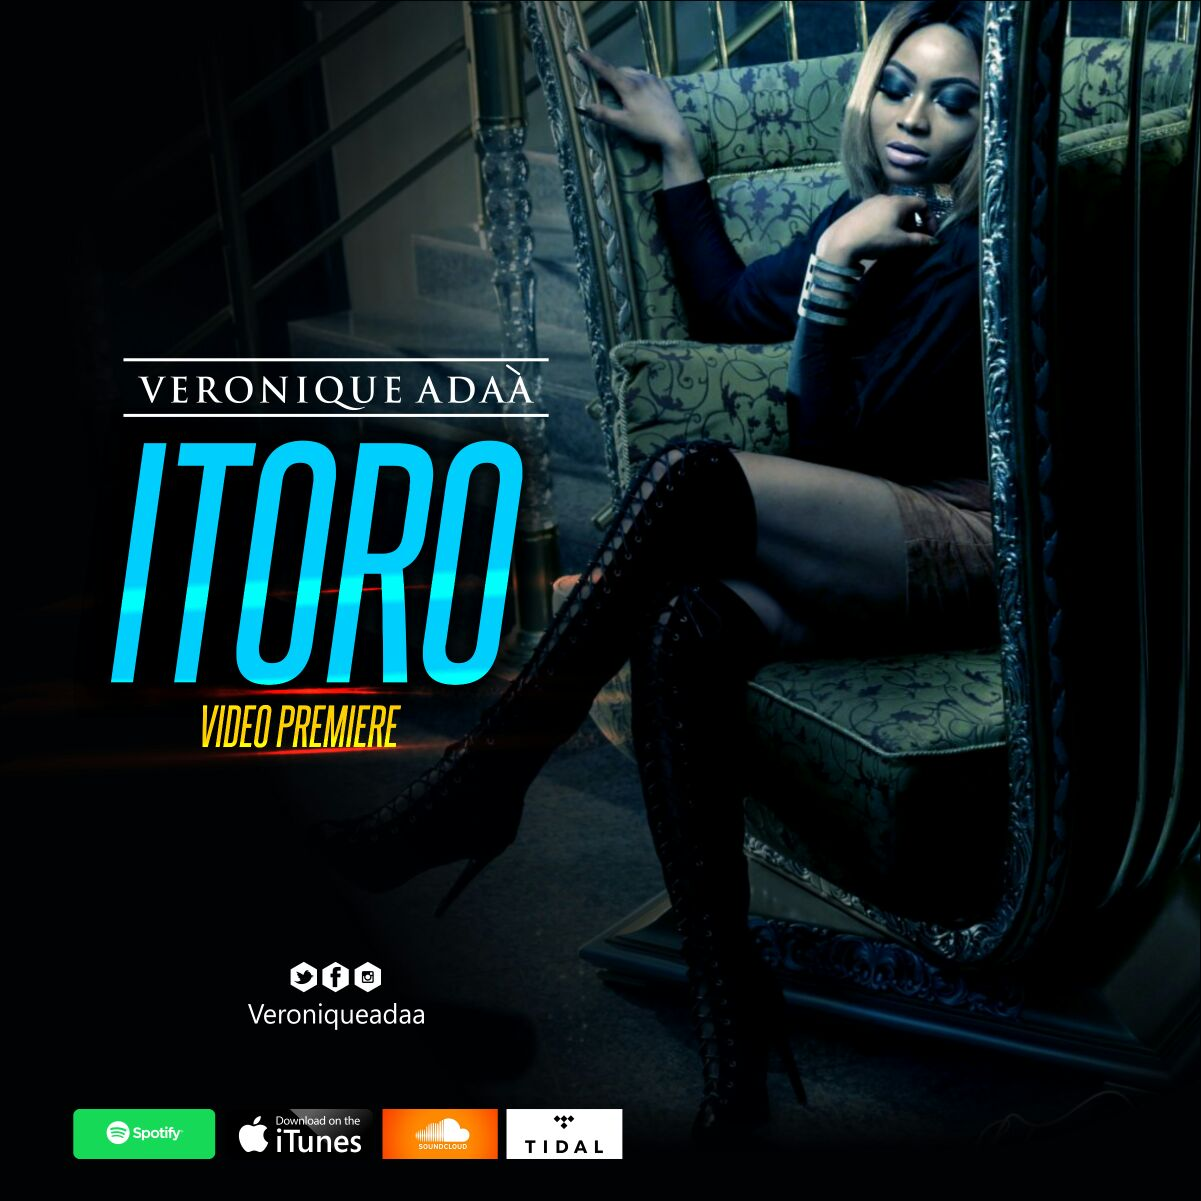 VIDEO: Veronique Adaa – Itoro